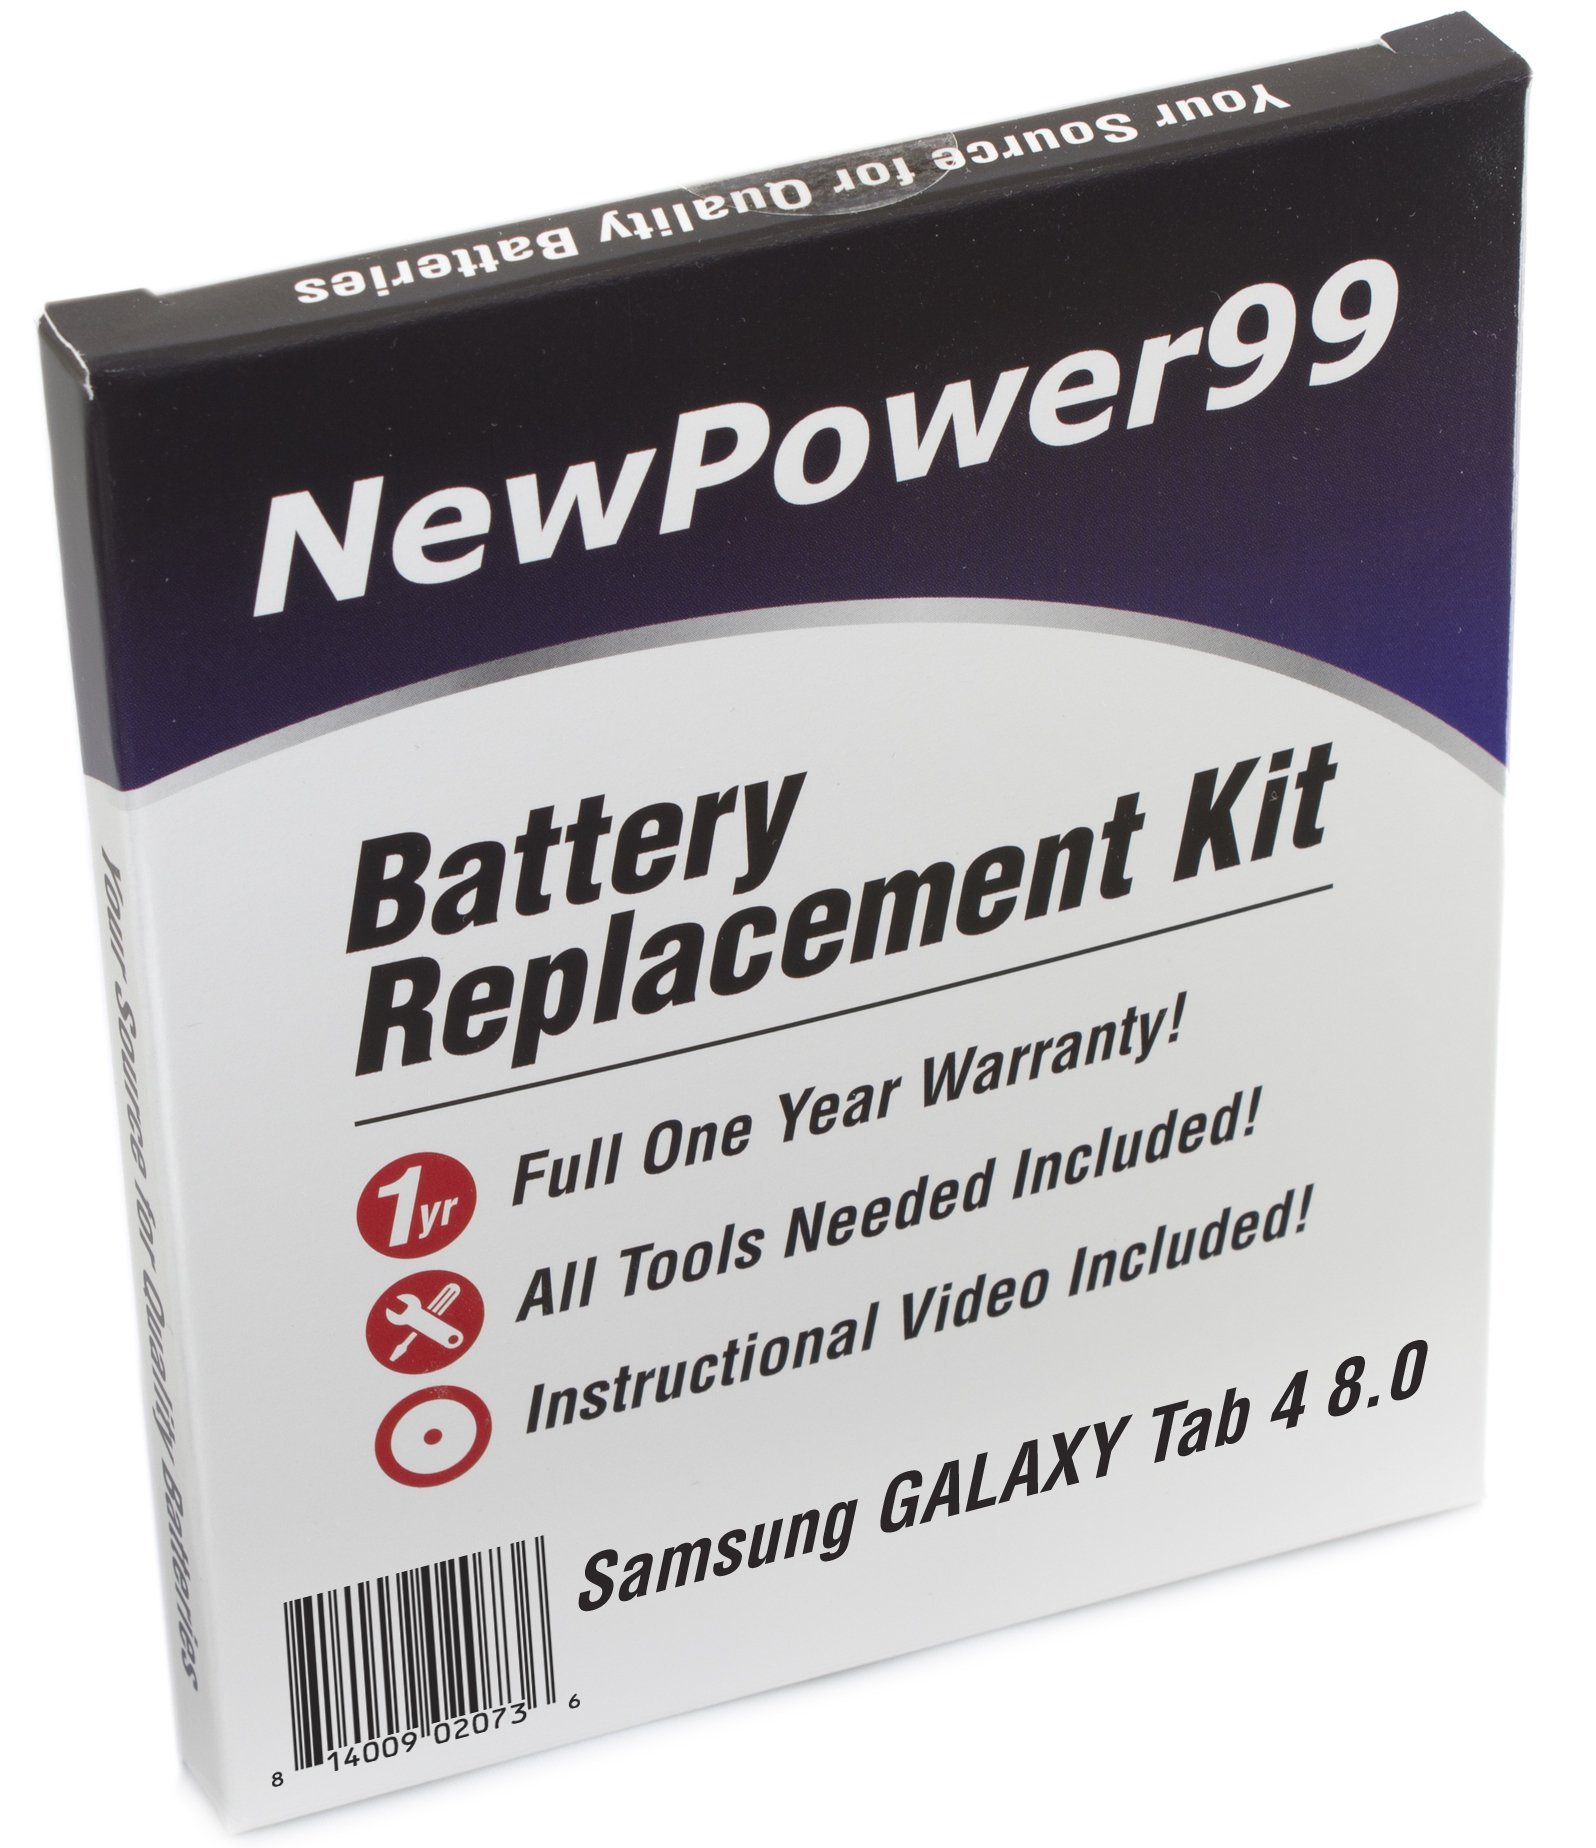 NewPower99 Samsung GALAXY Tab 4 8.0'' Battery Replacement Kit with Video Installation DVD, Installation Tools, and Extended Life Battery